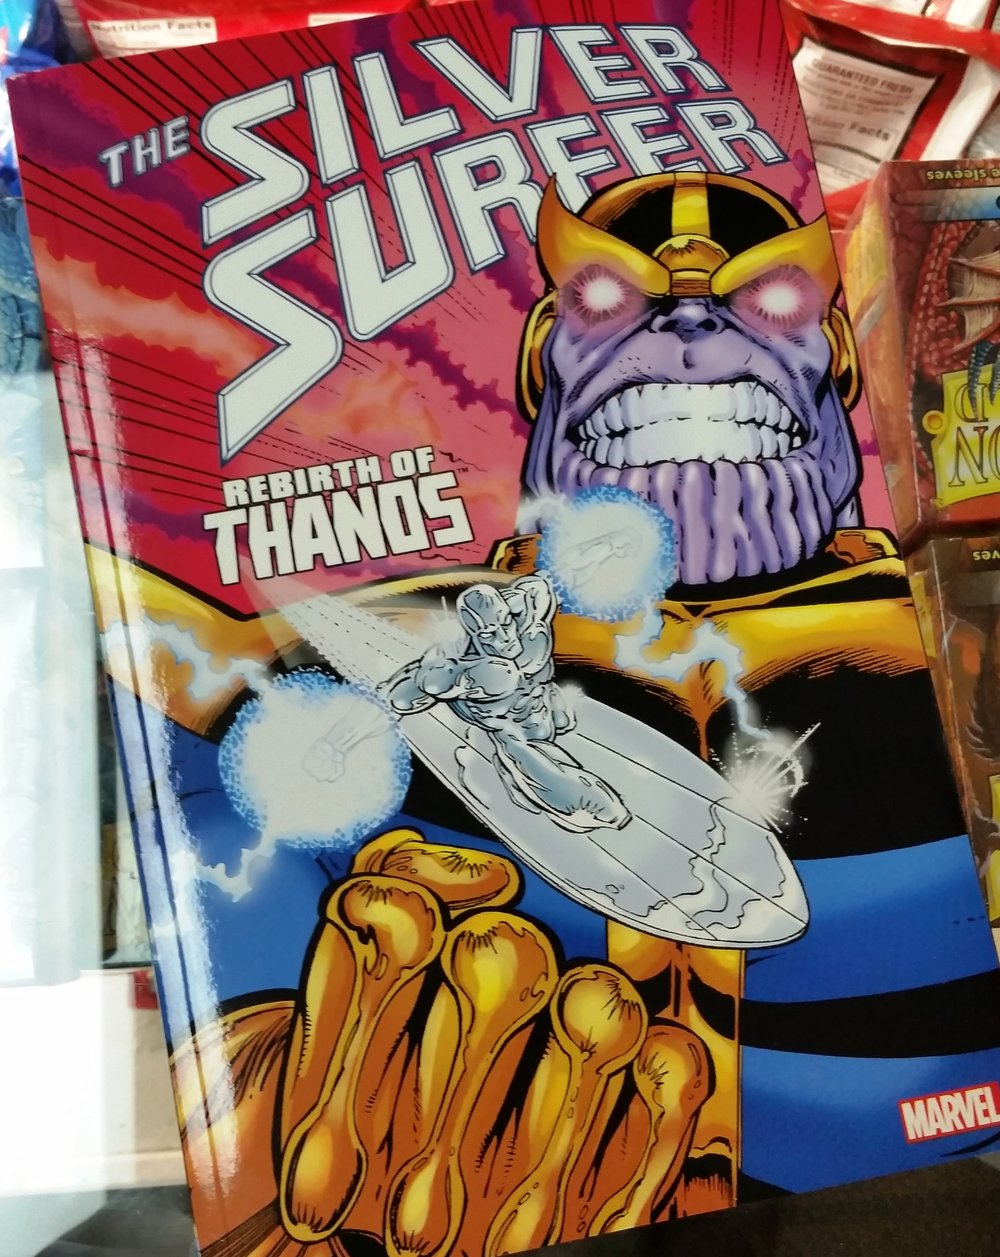 Silver Surfer: Rebirth of Thanos - By Jim Starlin (DC)